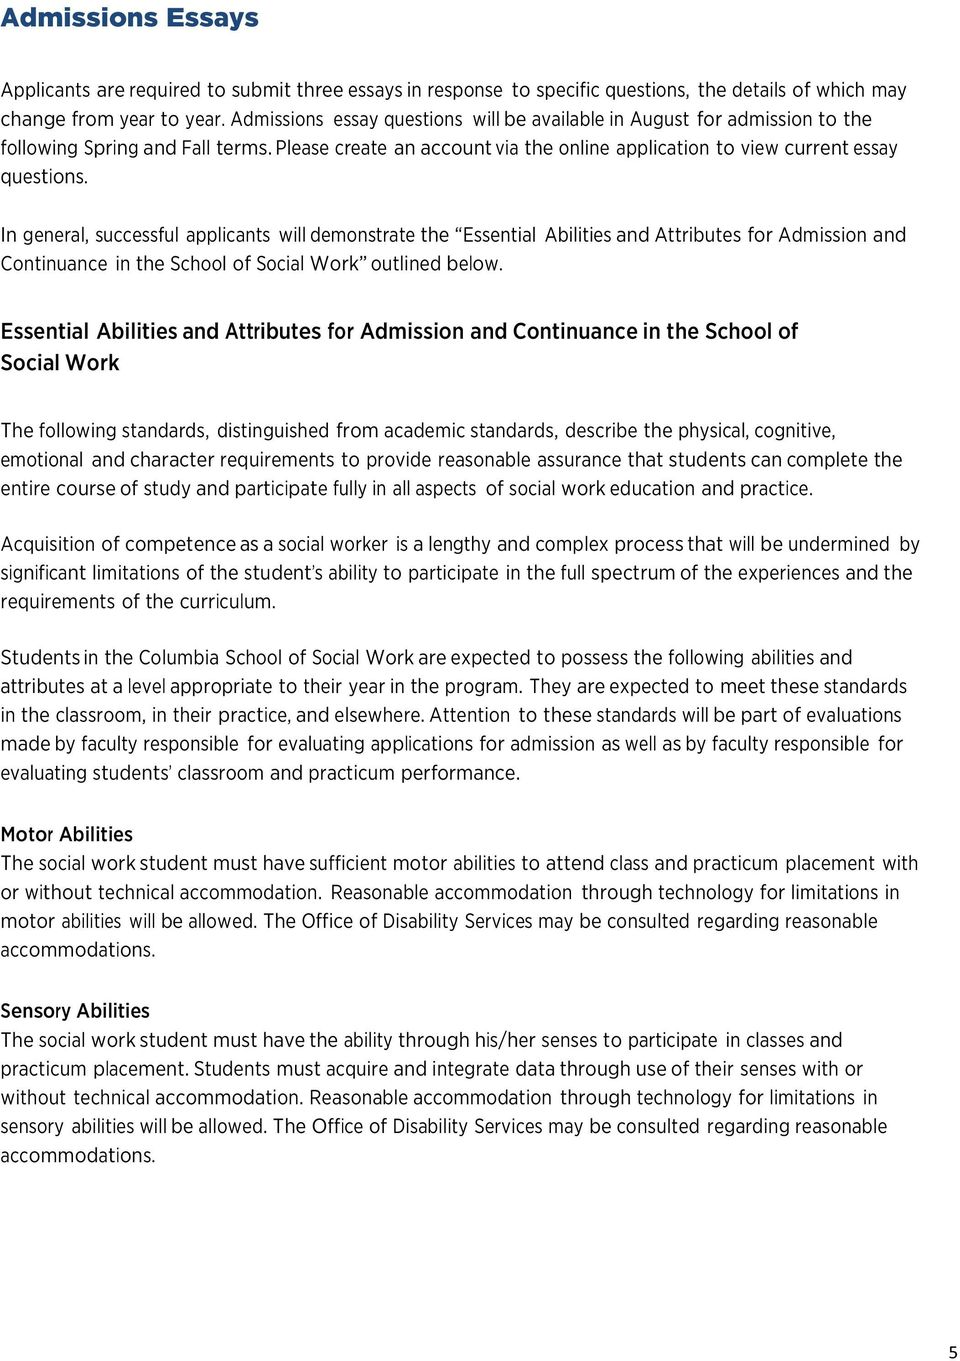 In general, successful applicants will demonstrate the Essential Abilities and Attributes for Admission and Continuance in the School of Social Work outlined below.